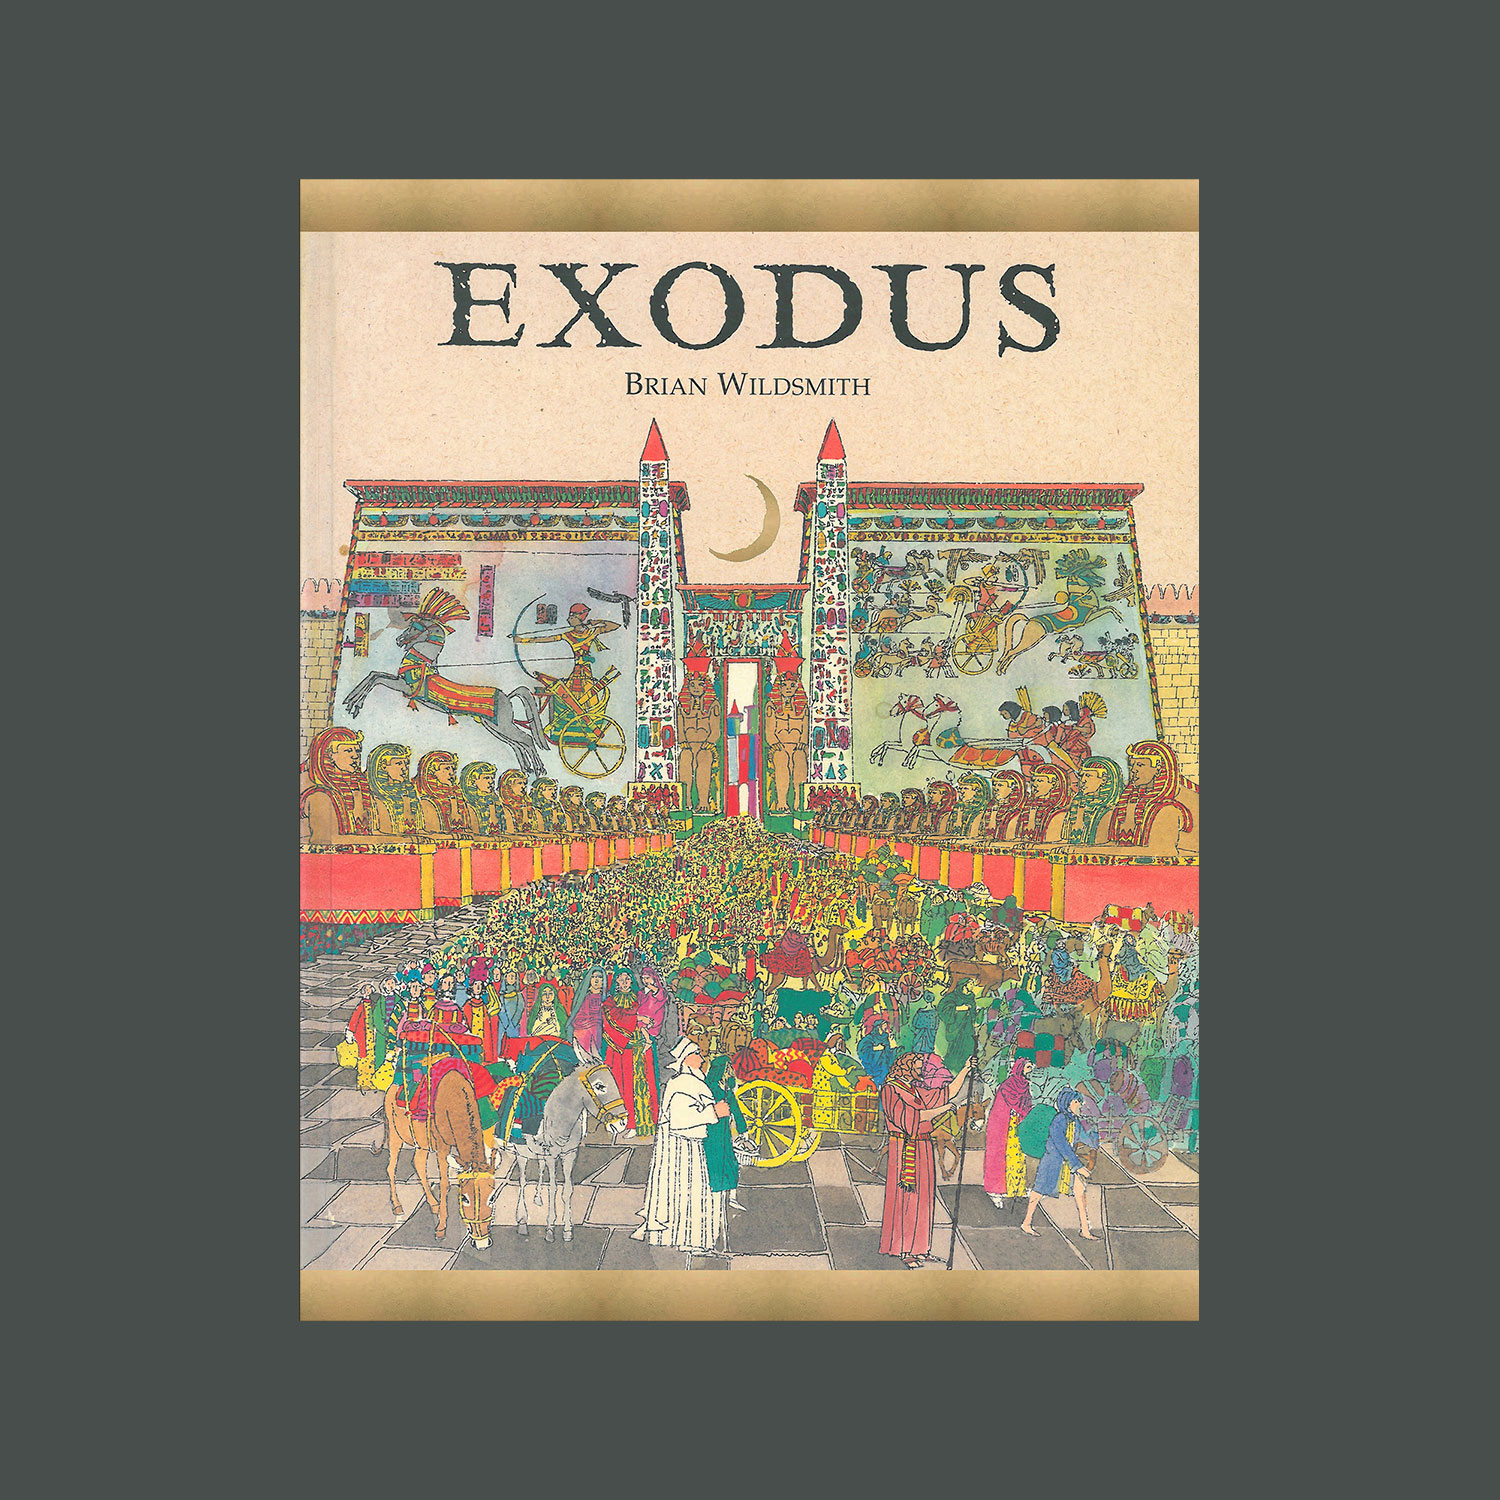 """EXODUS - 1998. Reprinted as Moses""""This award winning book by Brian Wildsmith is the story of how one man led his people out of slavery to a land that God had promised to give them. His name was Moses. With vivid, richly detailed illustrations Wildsmith captures all the major events of one of the greatest stories in the Bible. The story of the Exodus and the rescue of the Hebrews comes alive against stunning backdrops from the great palaces of ancient Egypt to the vast expanses of Sinai's mountains and wilderness.""""""""…Filled with meticulous and decorative detail, glowing with rich colours and arranged to maximise dramatic impact, the paintings show the awesome events with excitement and beauty.""""School Library Journal"""